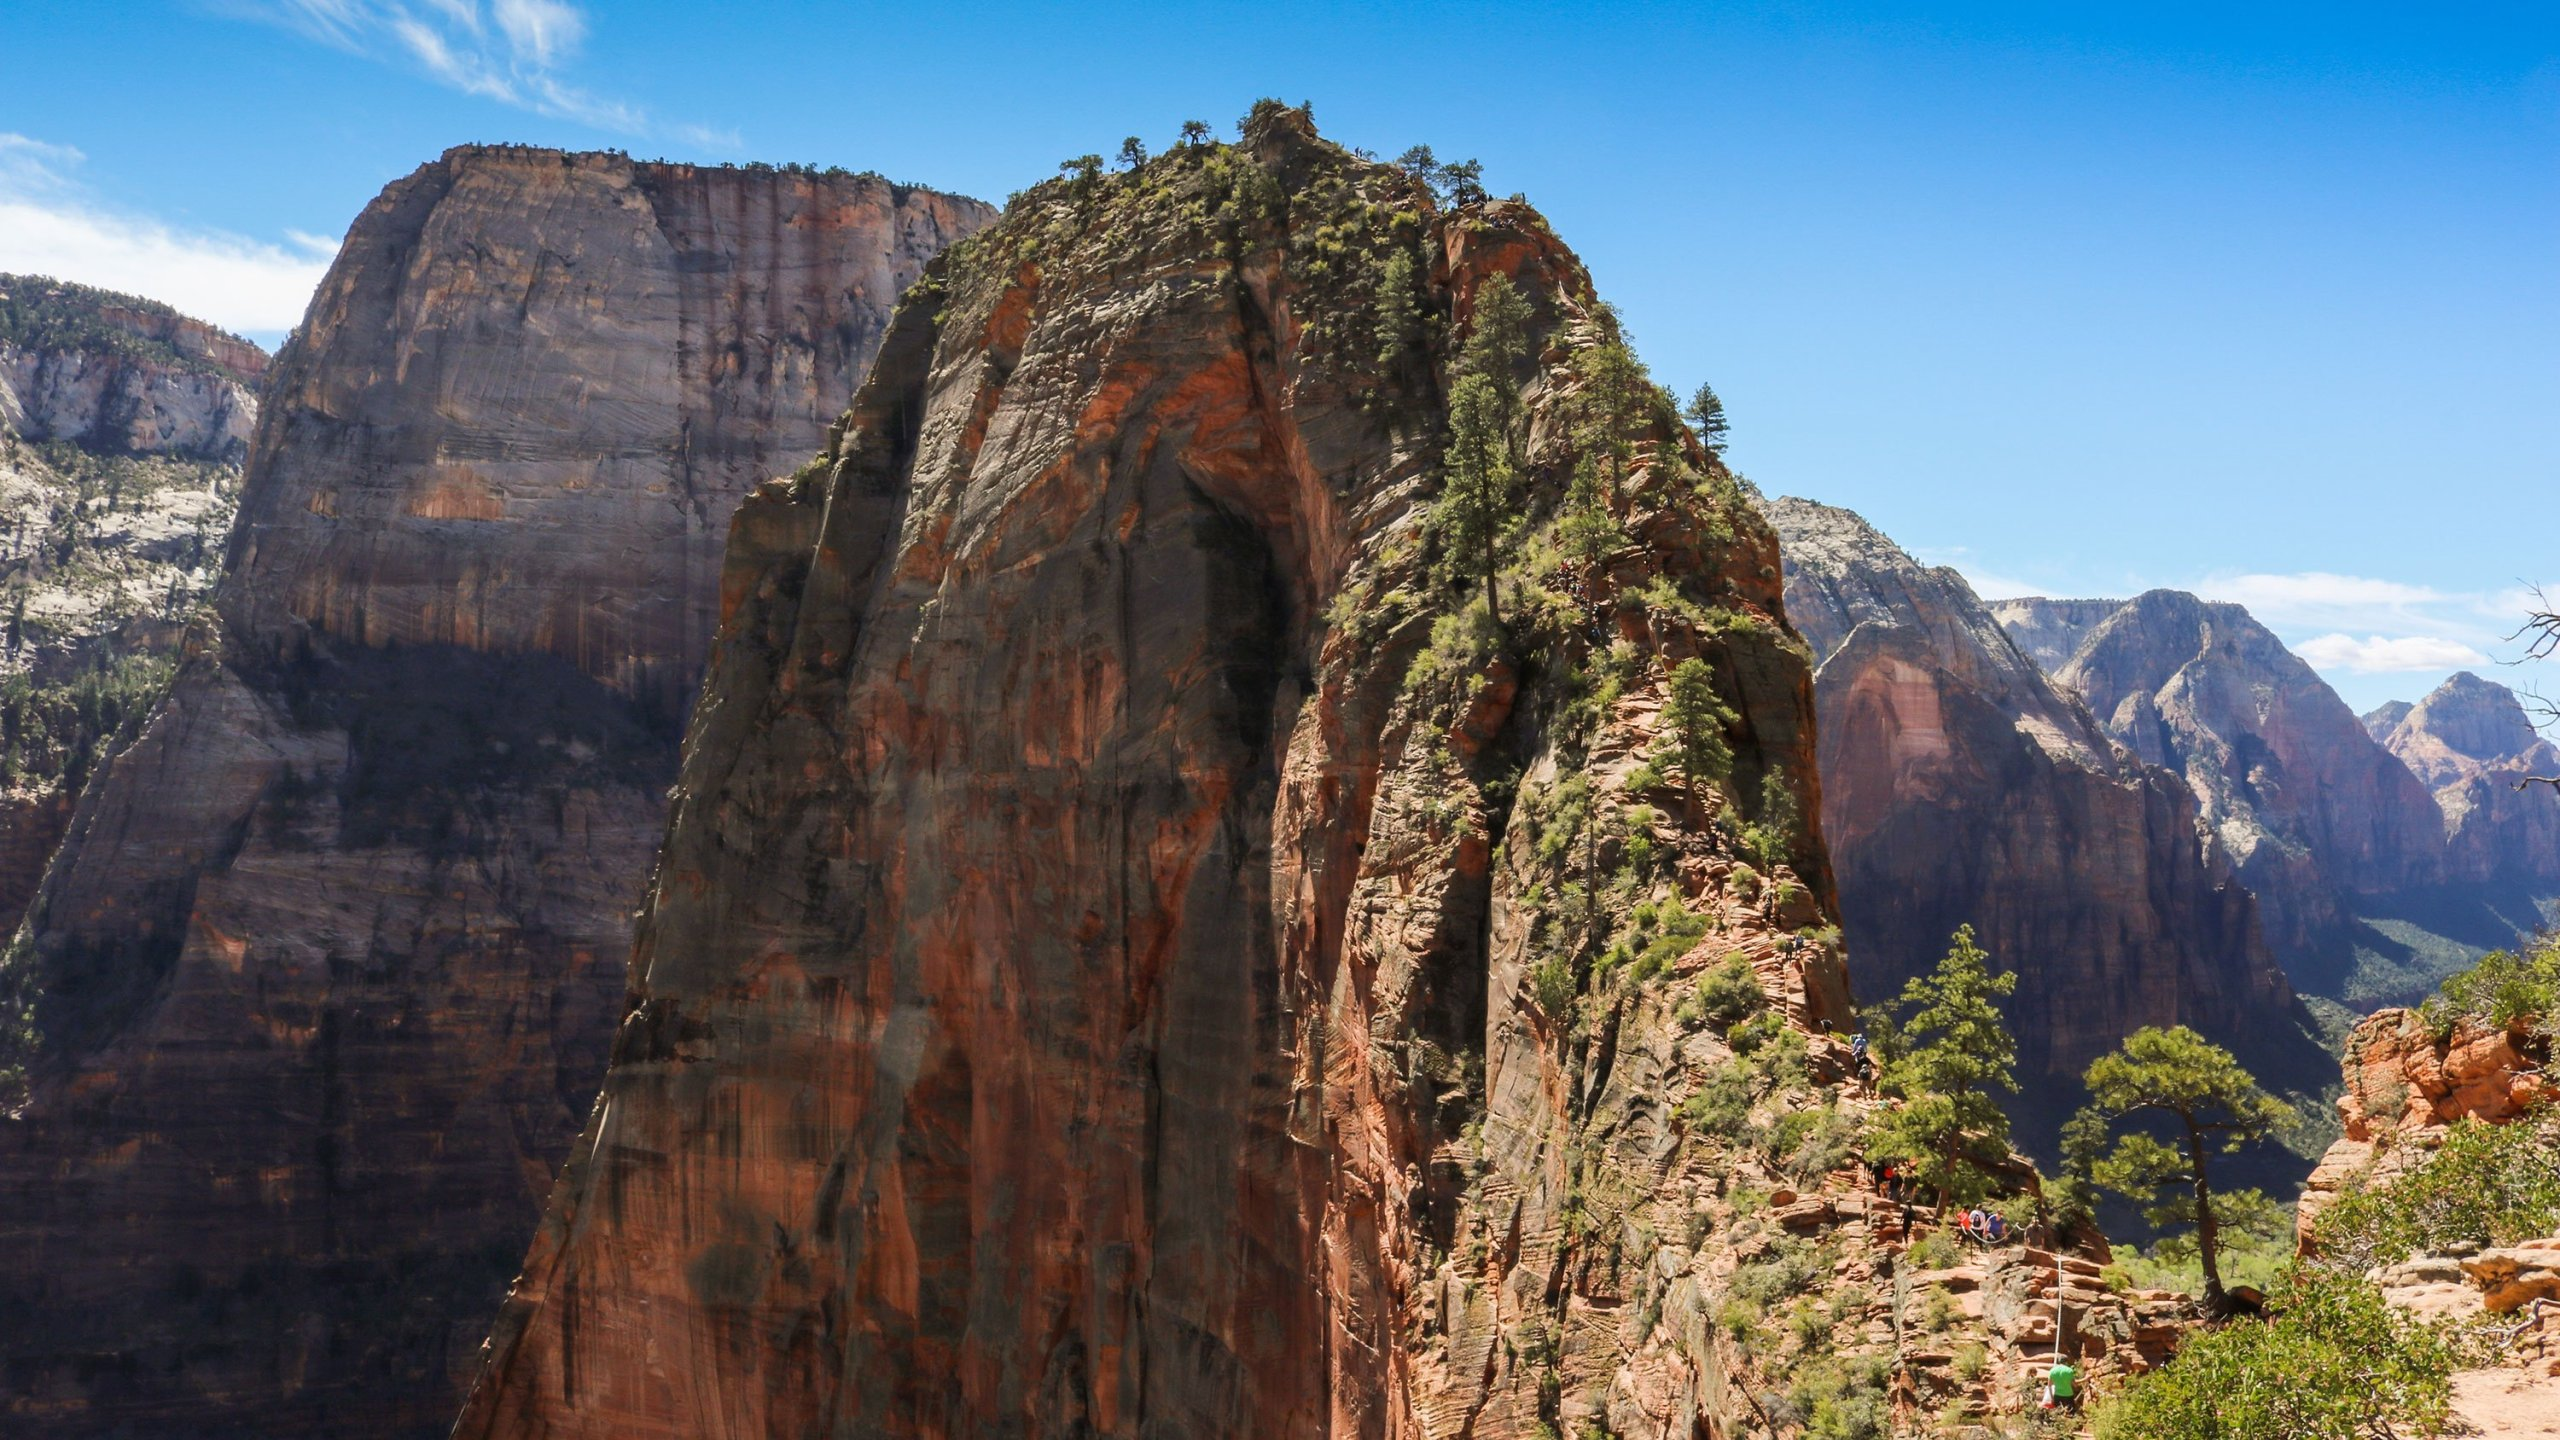 Hiker Found Dead After Suspected Fall At Utah S Zion National Park